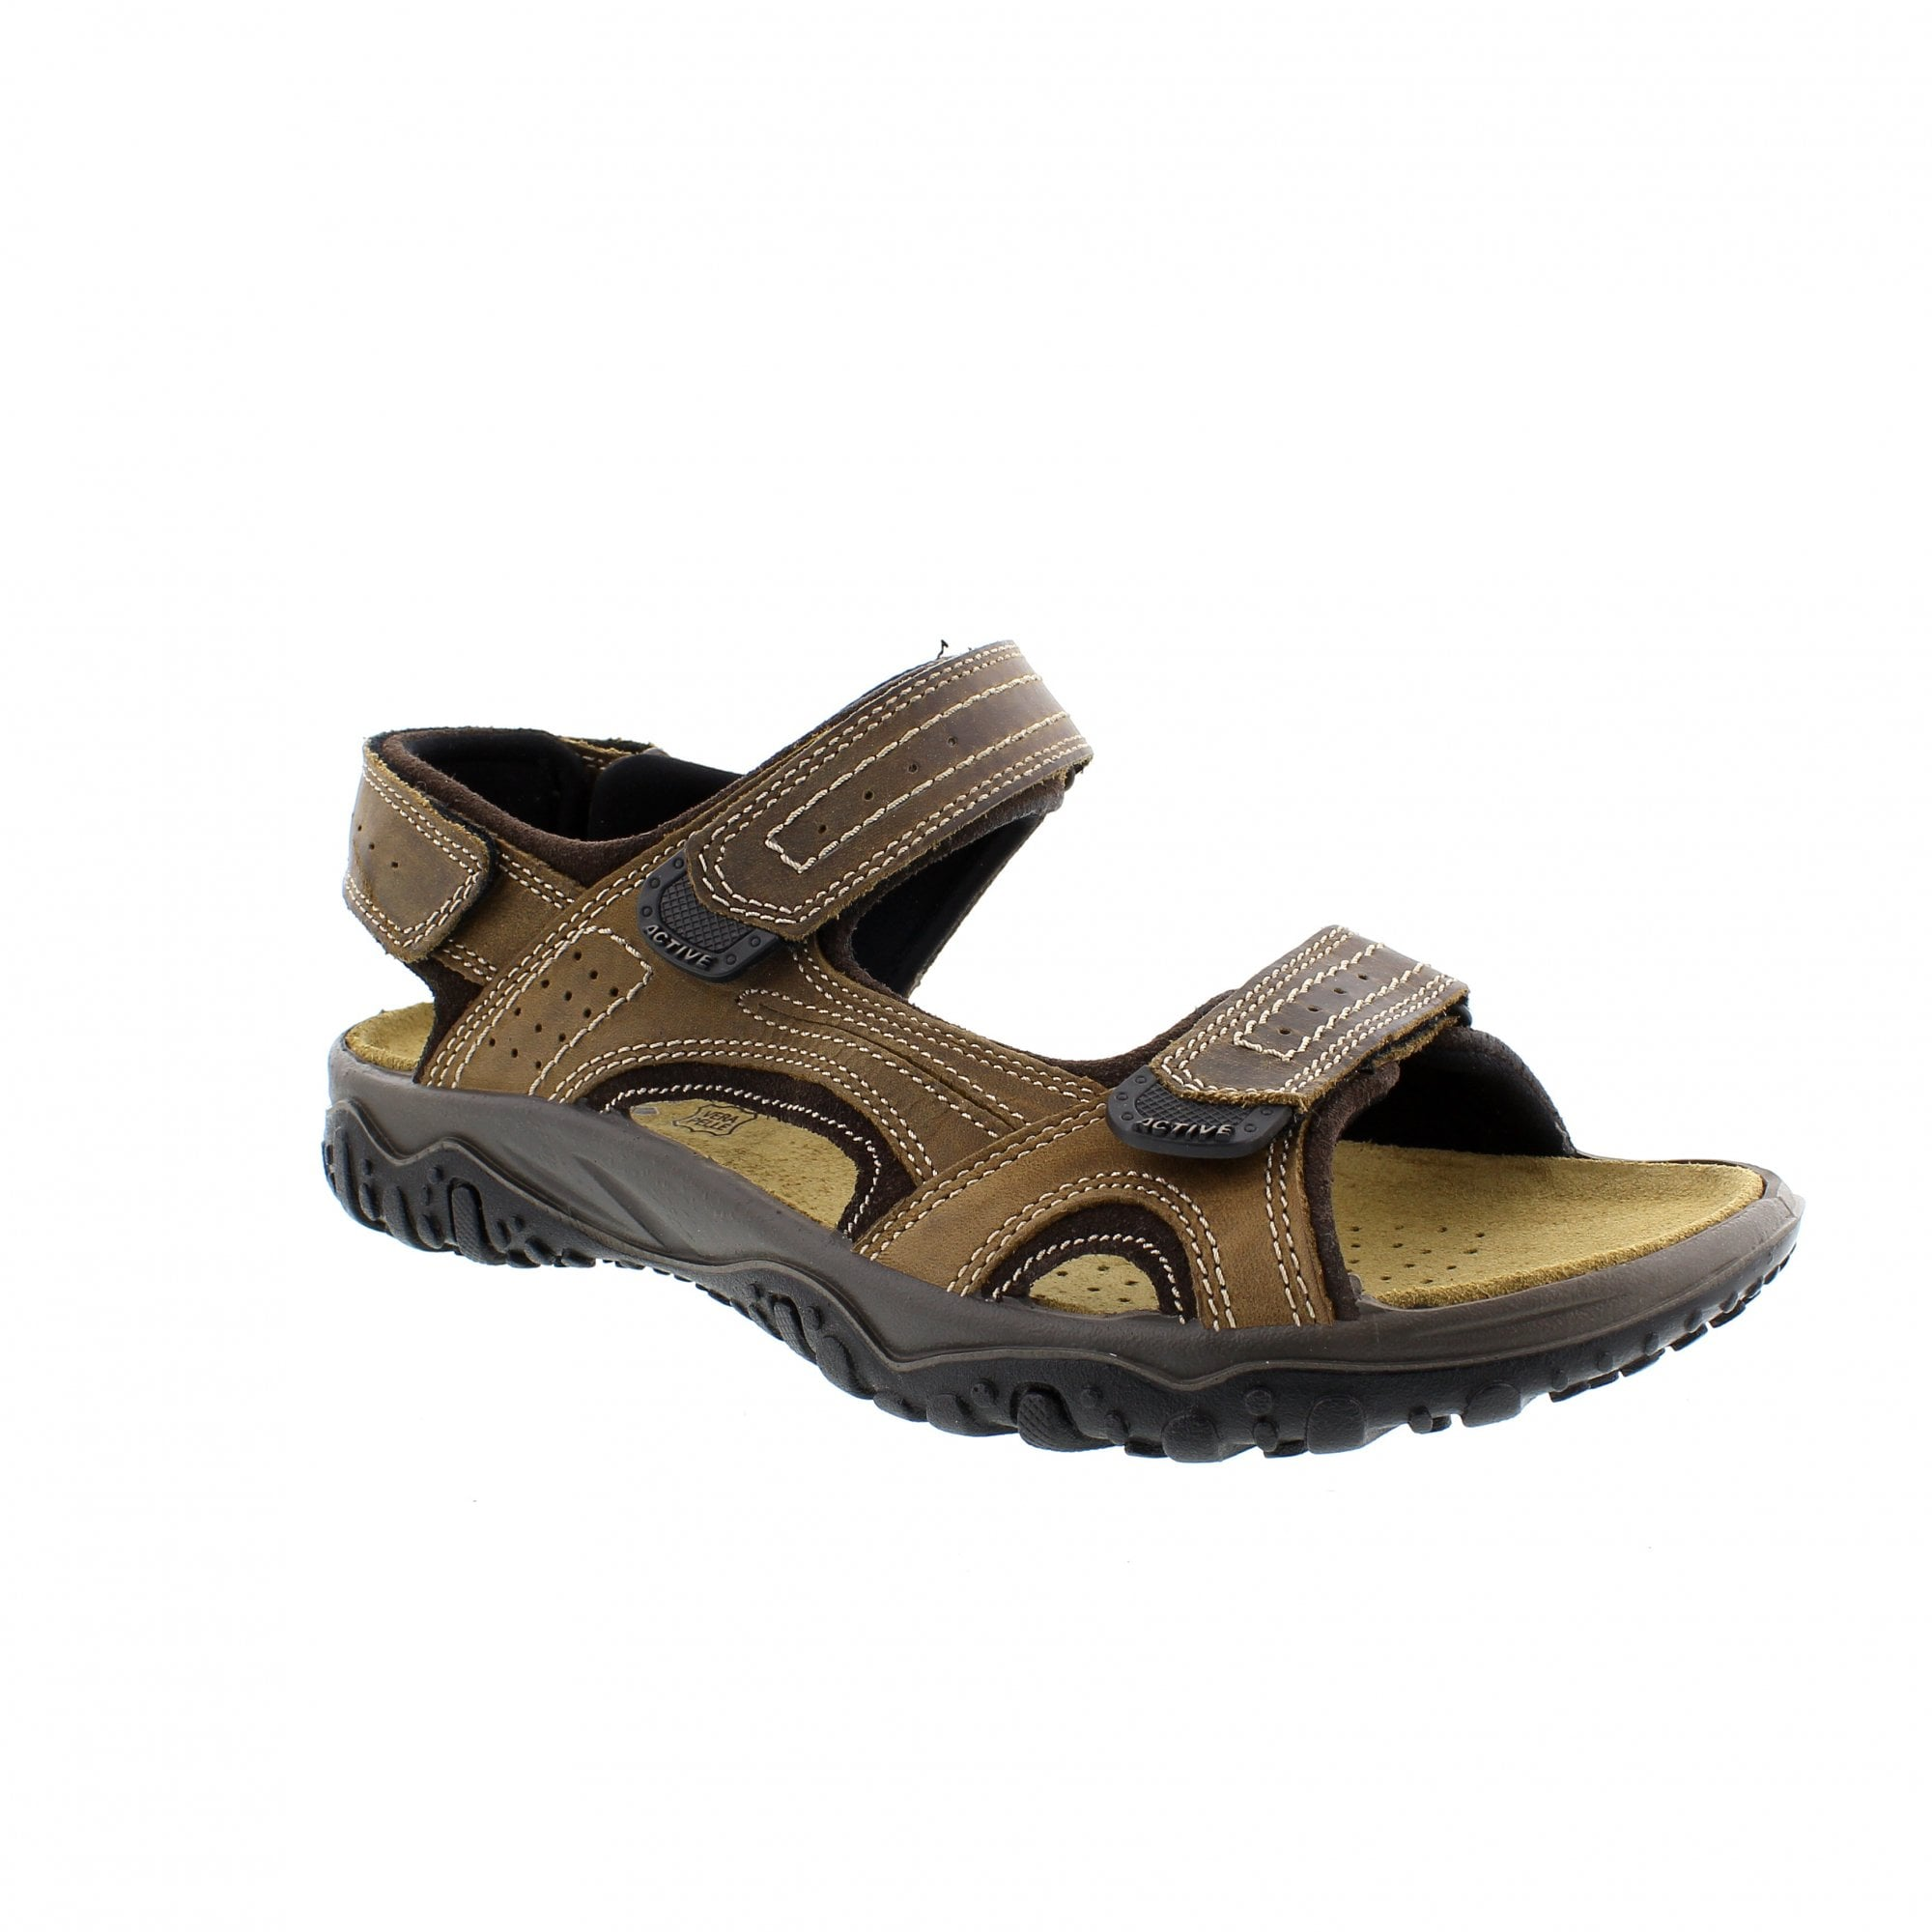 IMAC Lorenzo Men's Strap Outdoor Sandal